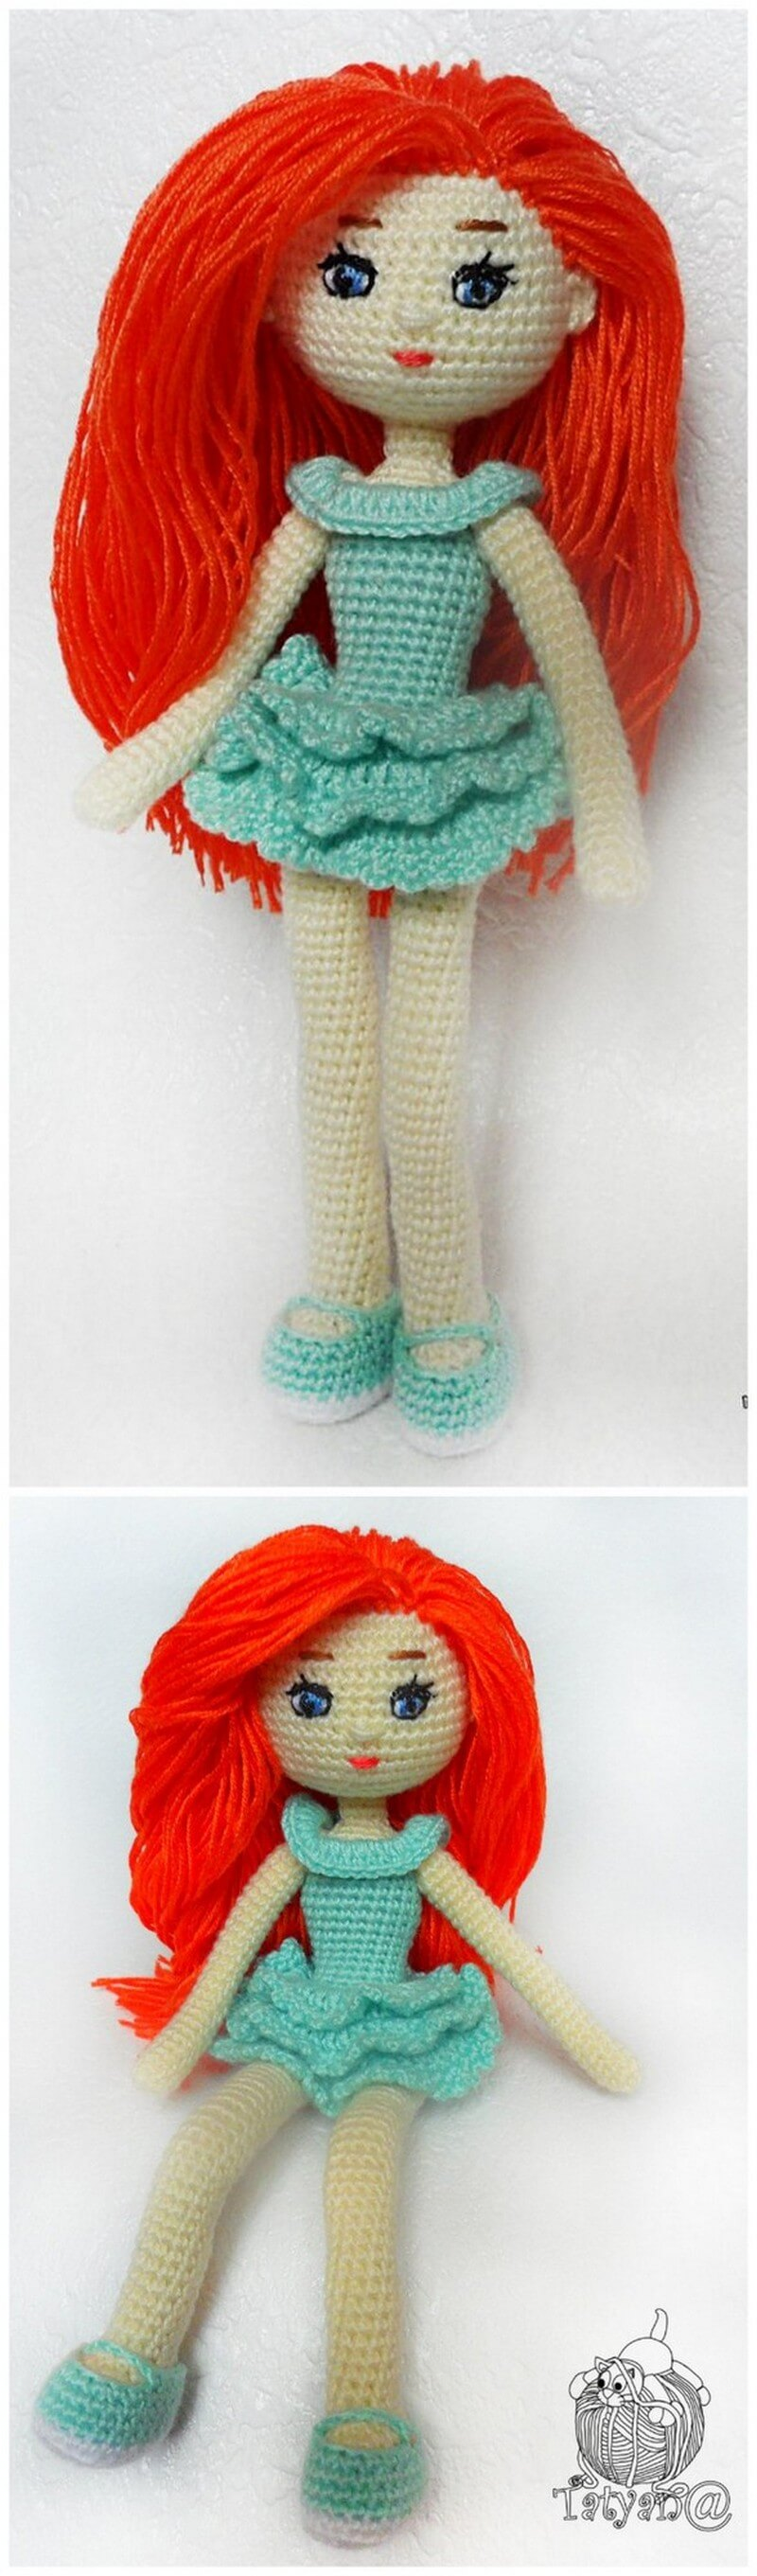 Crochet Amigurumi Doll Pattern (28)